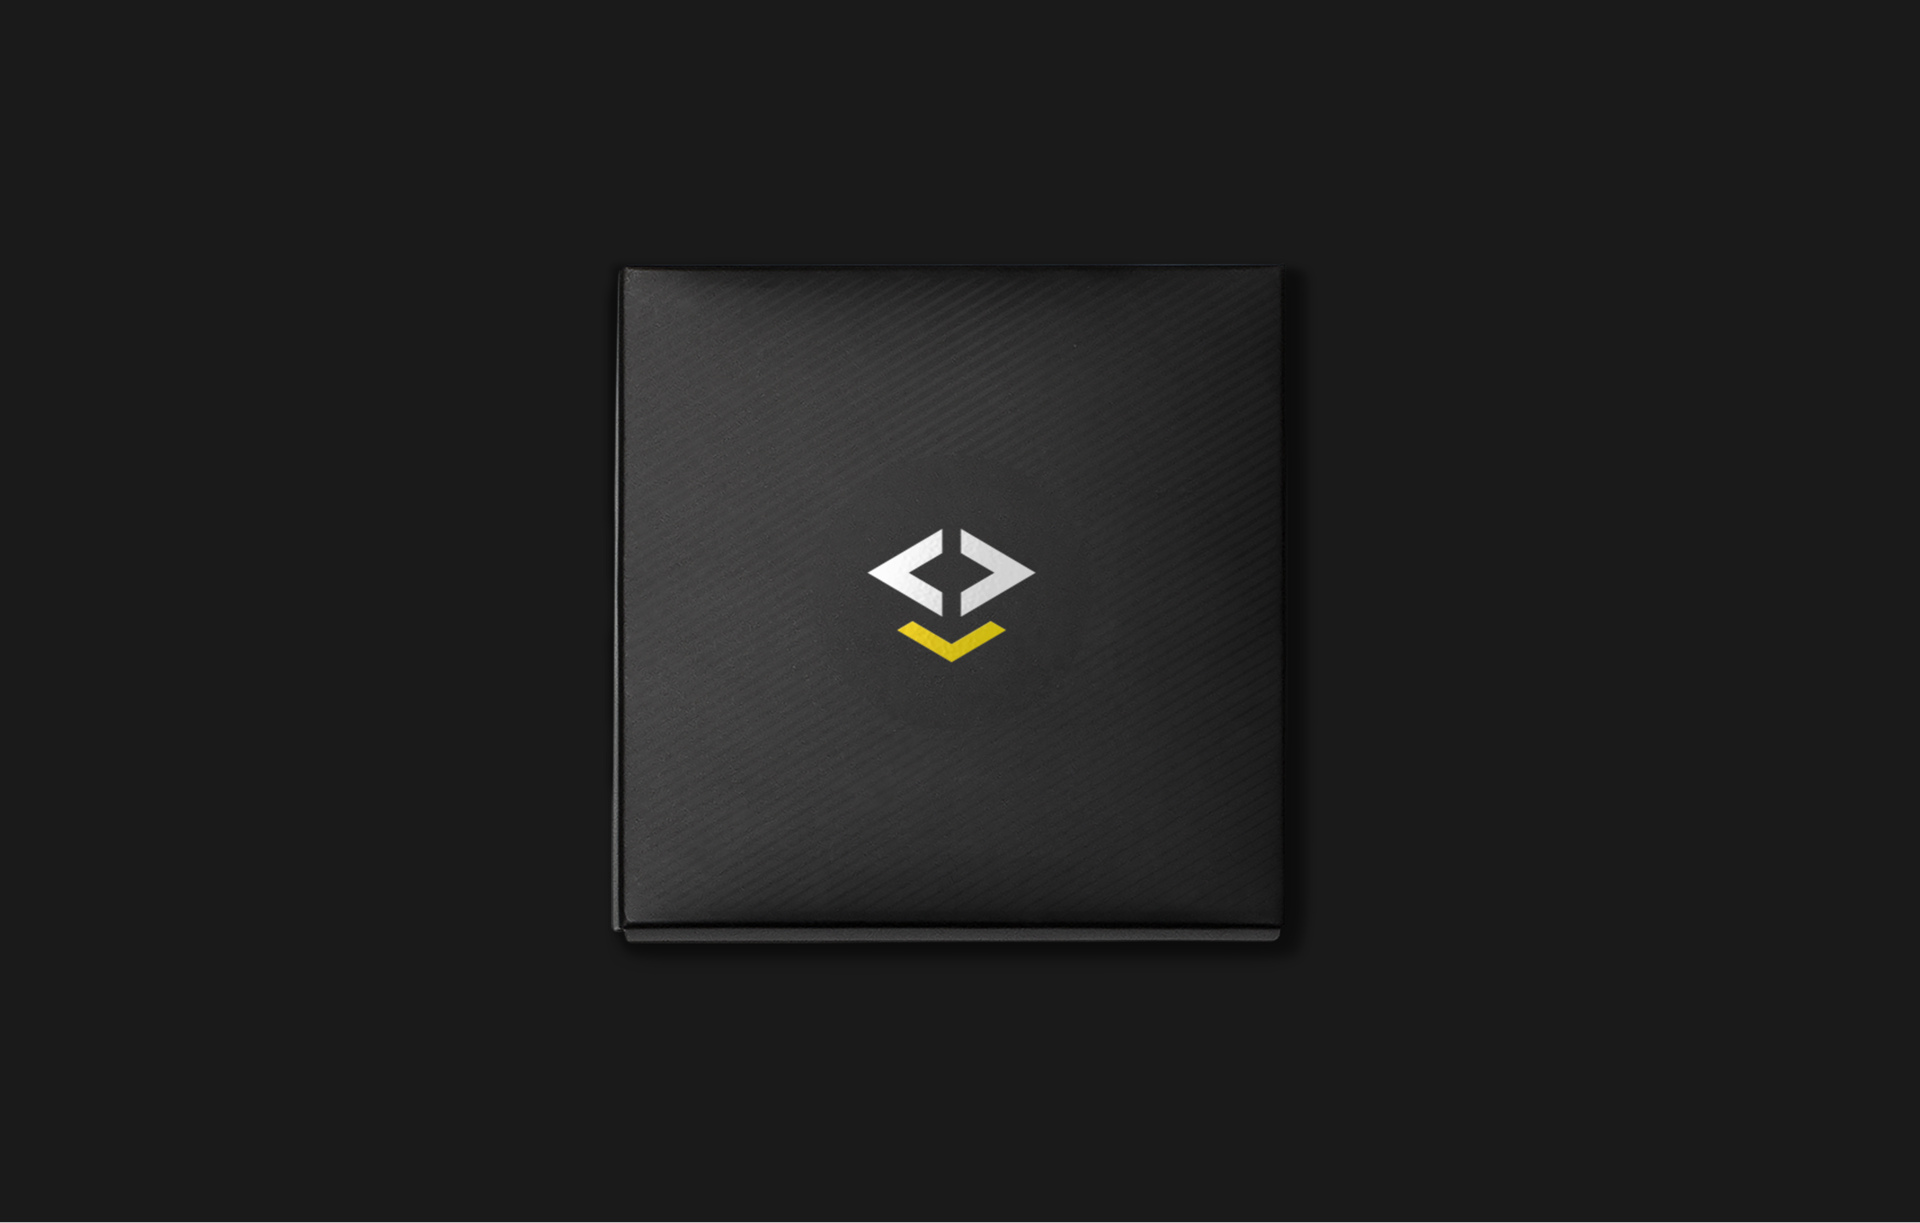 Brand design for IAR Embedded Workbench. Material from the process. Illustration showing the logotype in white and yellow on black packaging.